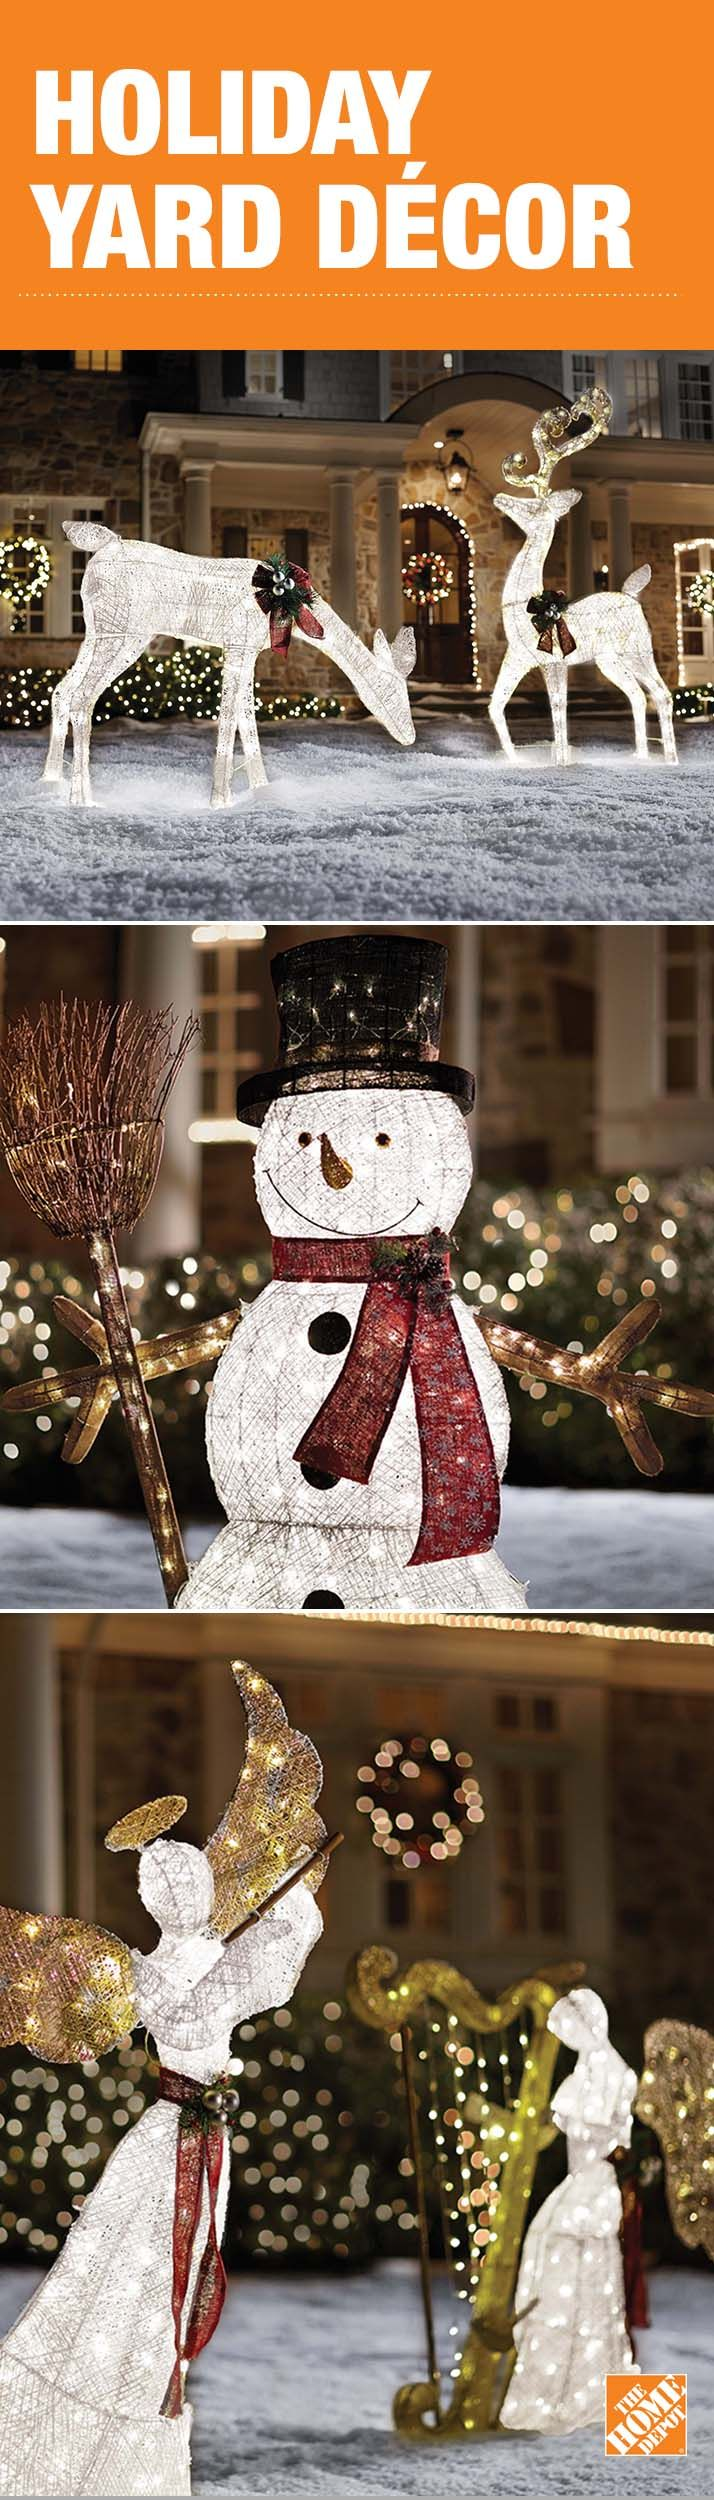 Depot Weihnachtsbeleuchtung.Bring The Cheerful Mood Of The Holiday Season To Your Yard With